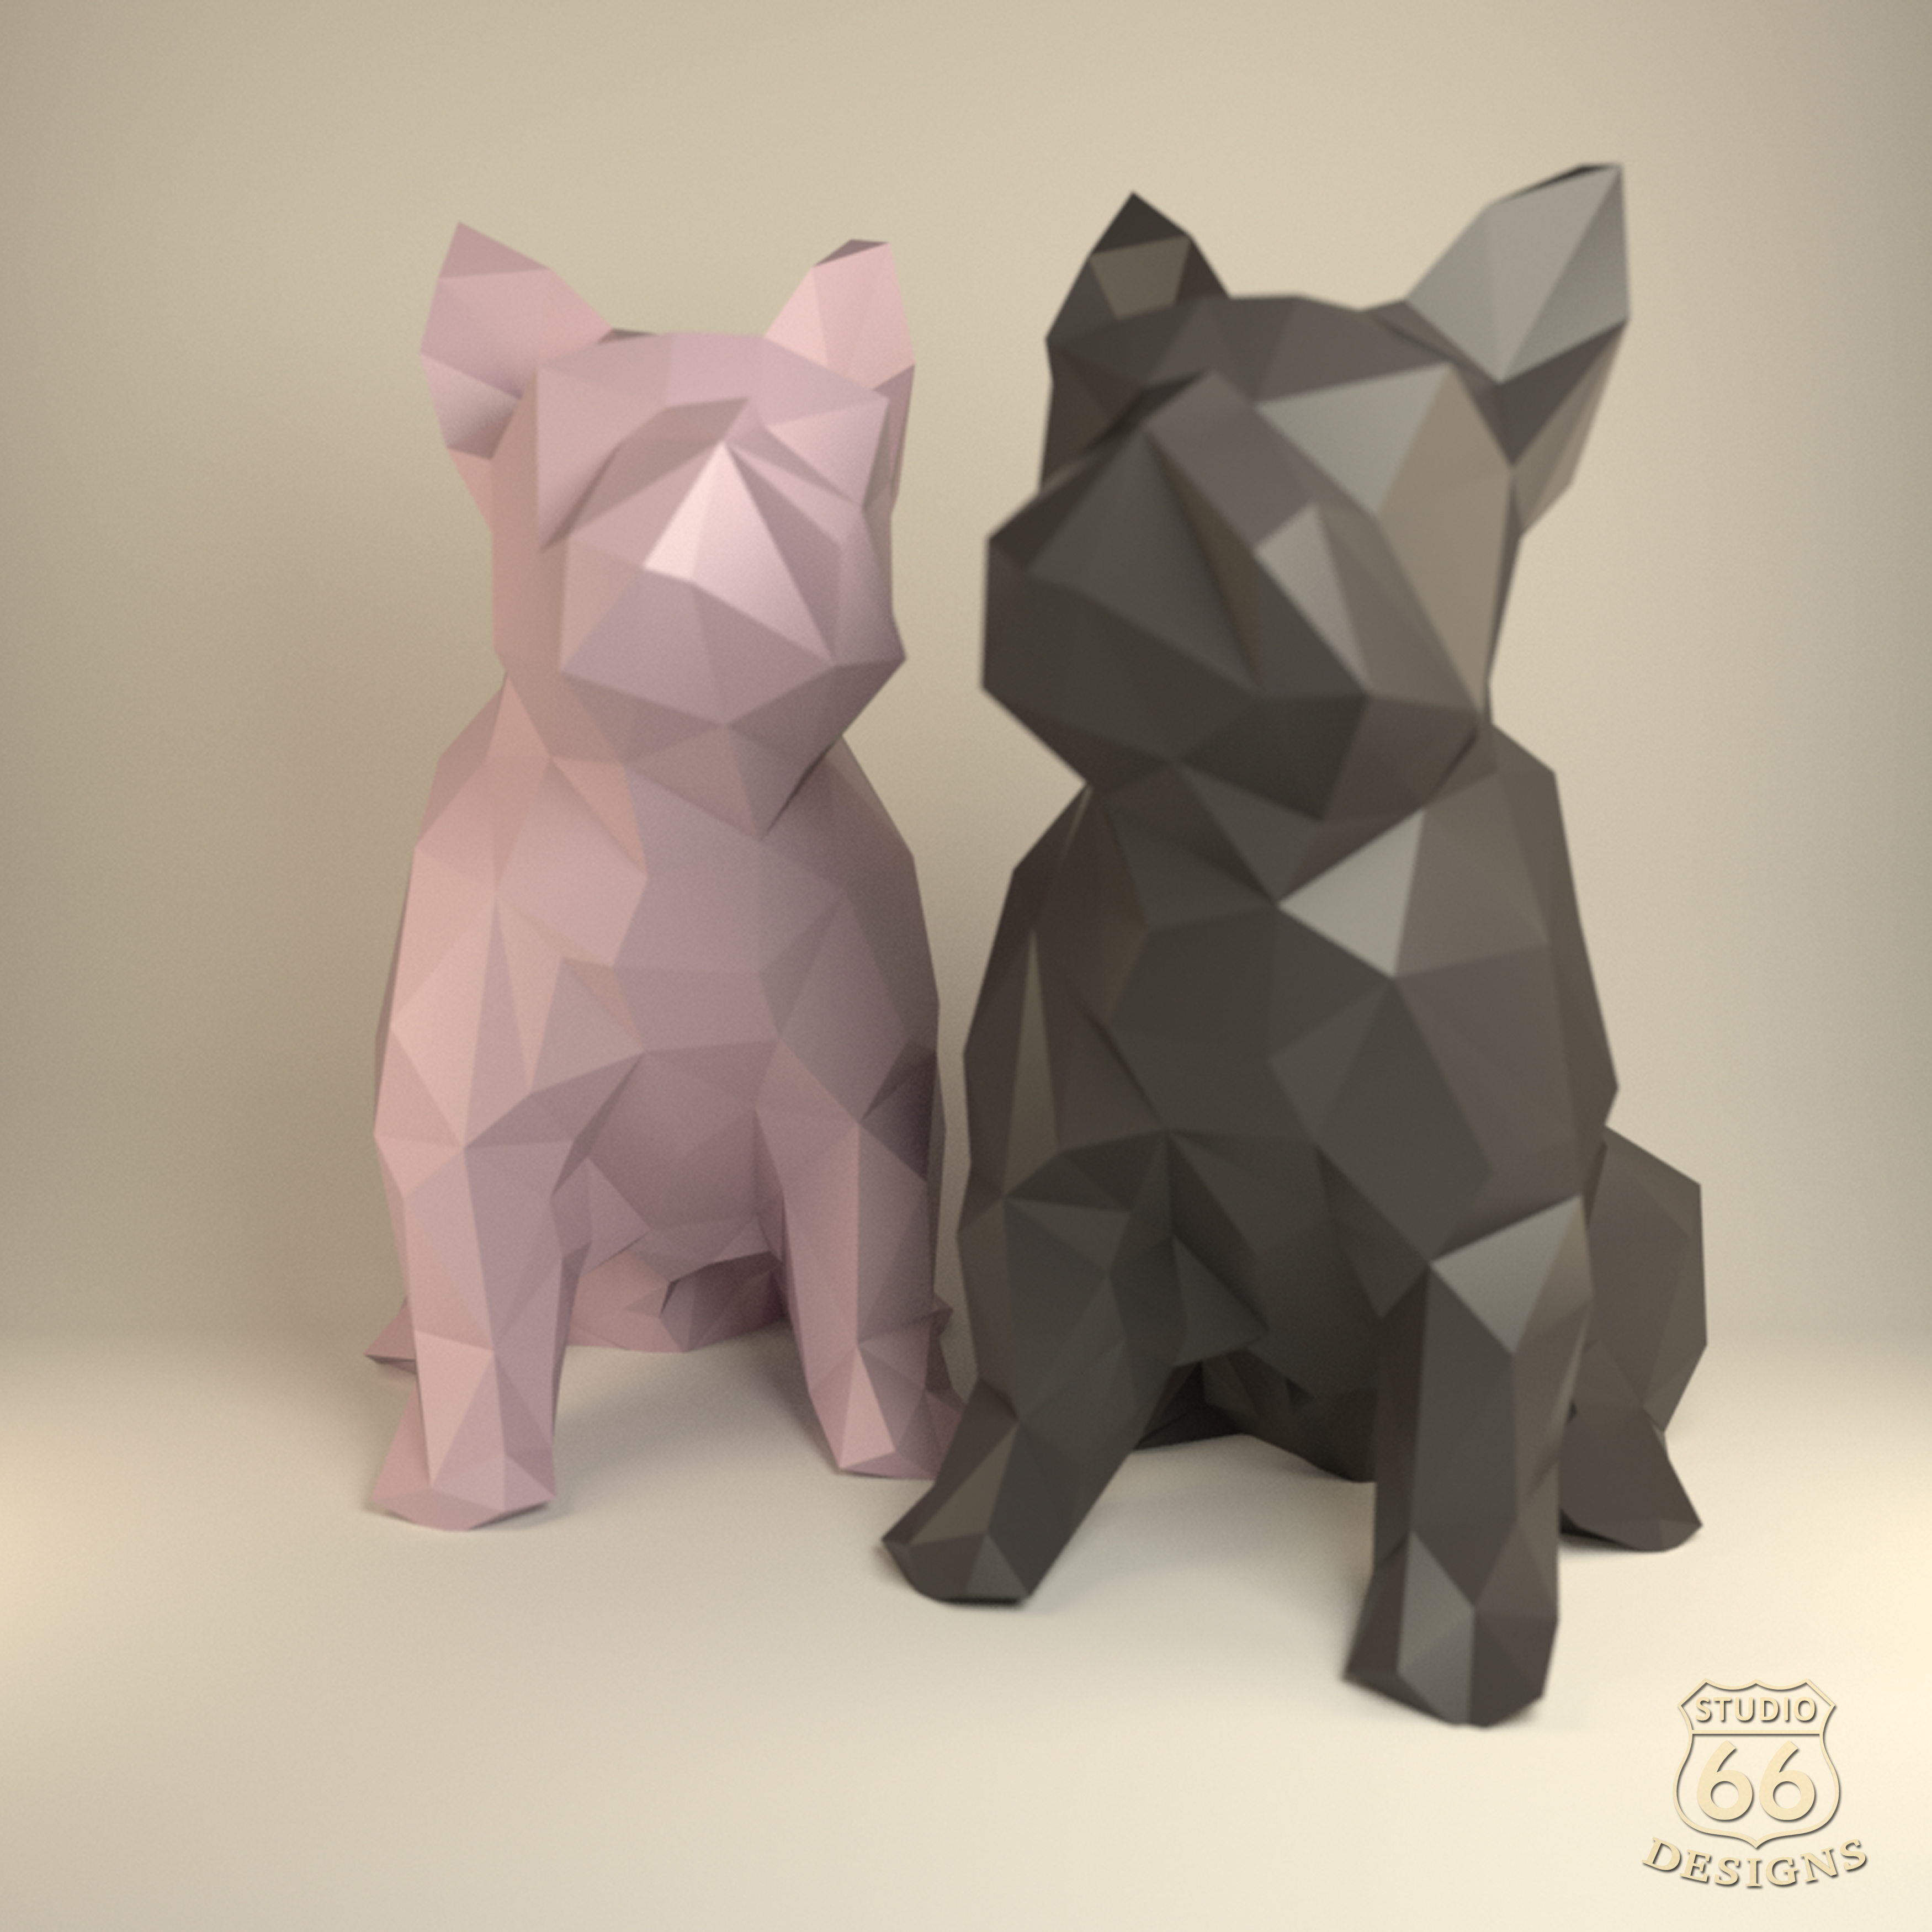 French Bulldog, Papercraft Bulldog, Paper Dog, Paper Animals, Papertoy, Home Decor, Frenchie, 3D papercraft model, lowpoly DIY, hobby idea example image 5